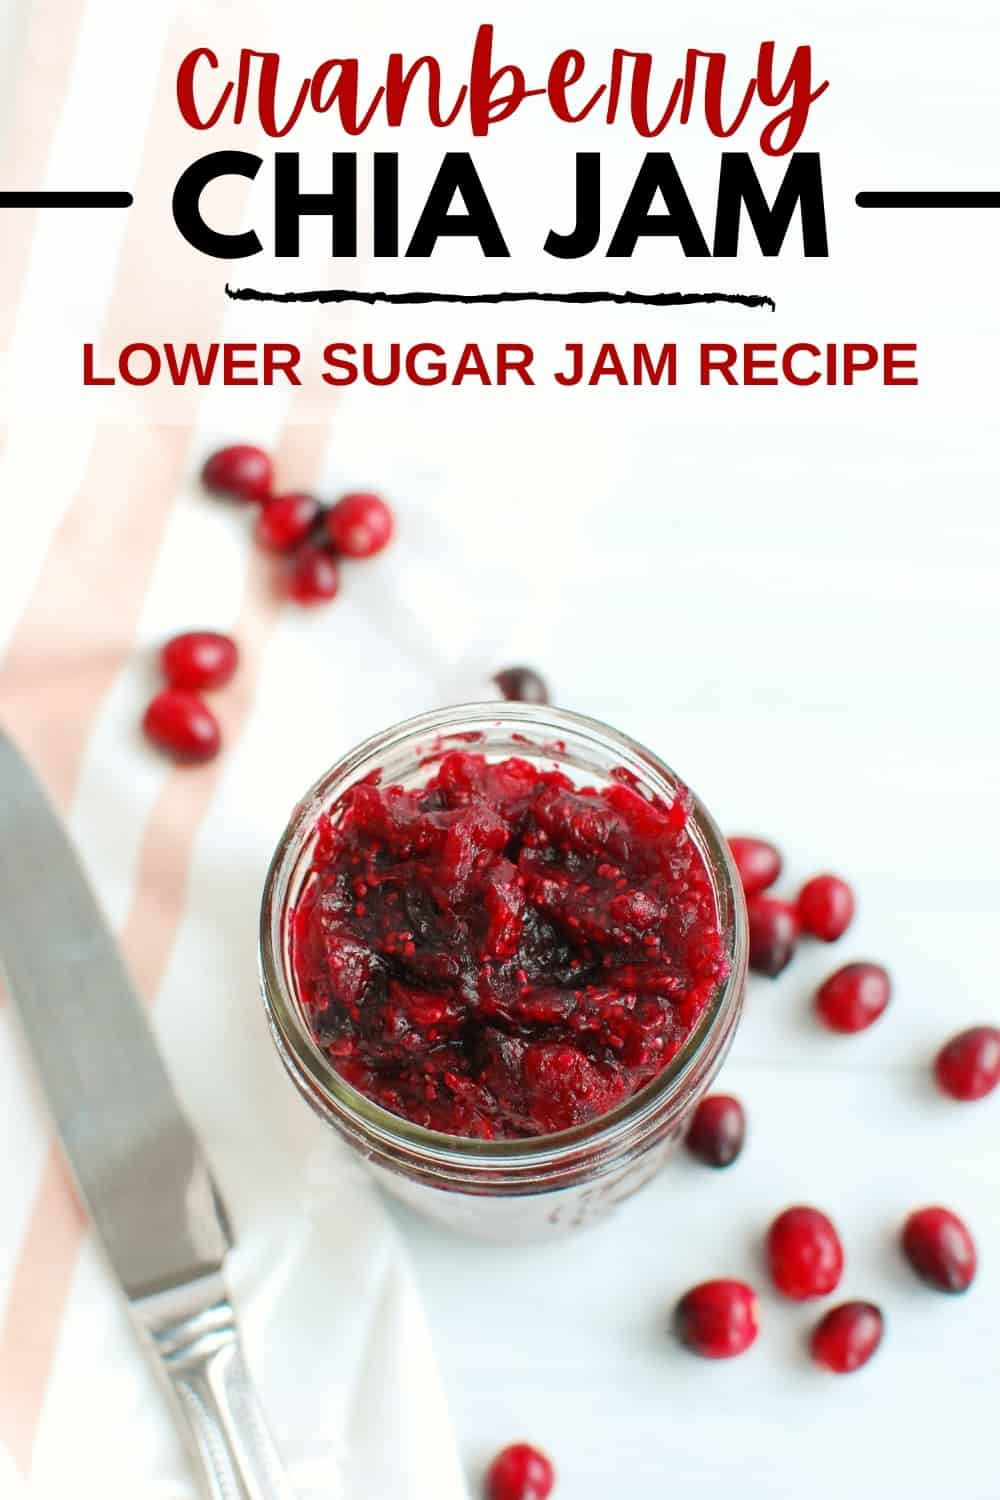 A jar of cranberry chia jam next to a butter knife with some fresh cranberries scattered around.